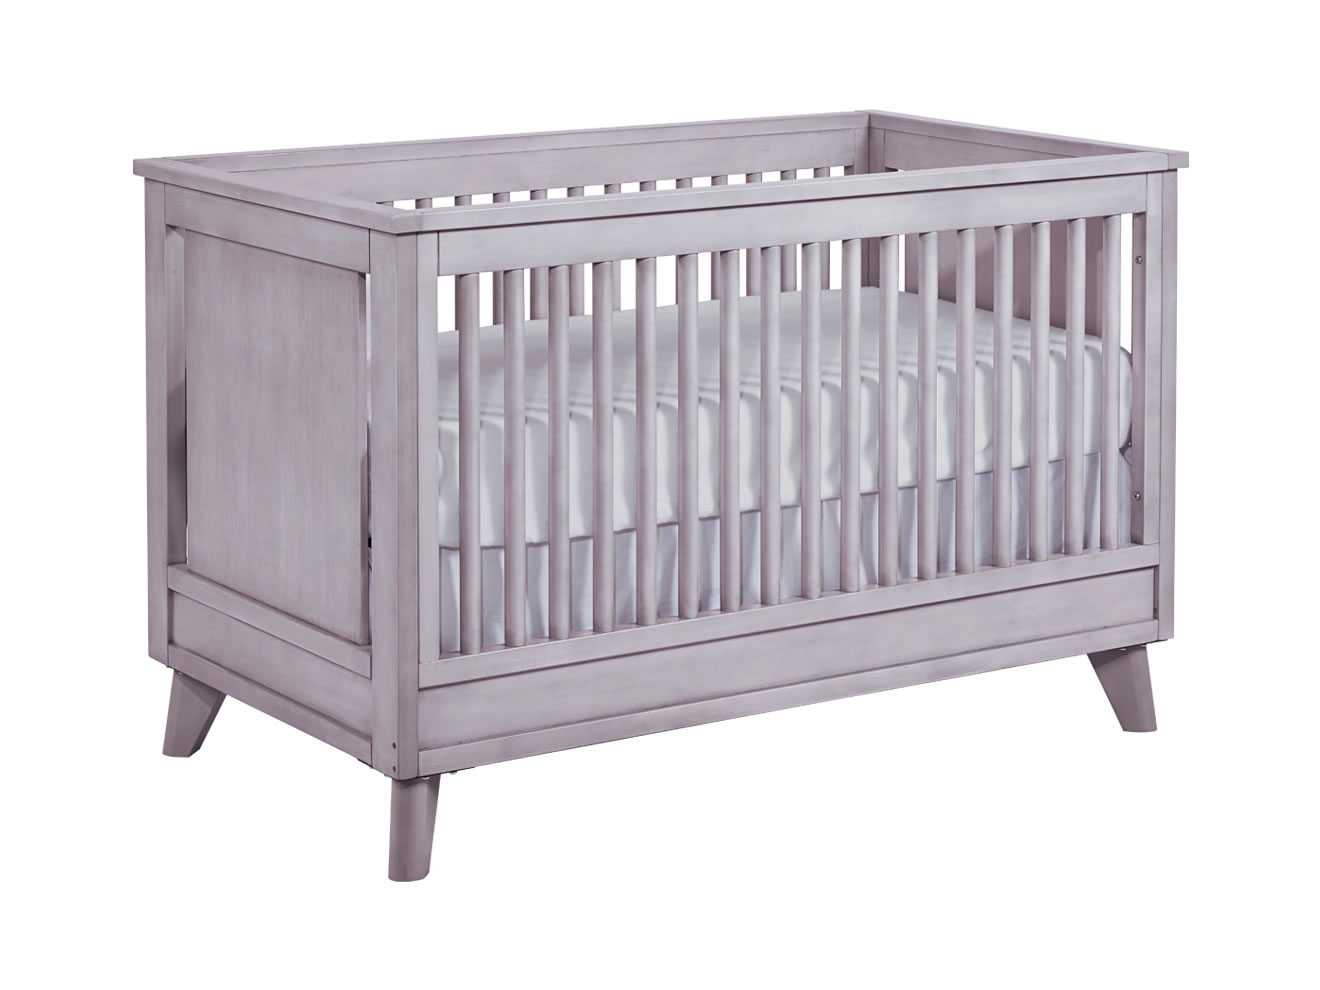 munire crib in gray for nursery furniture ideas